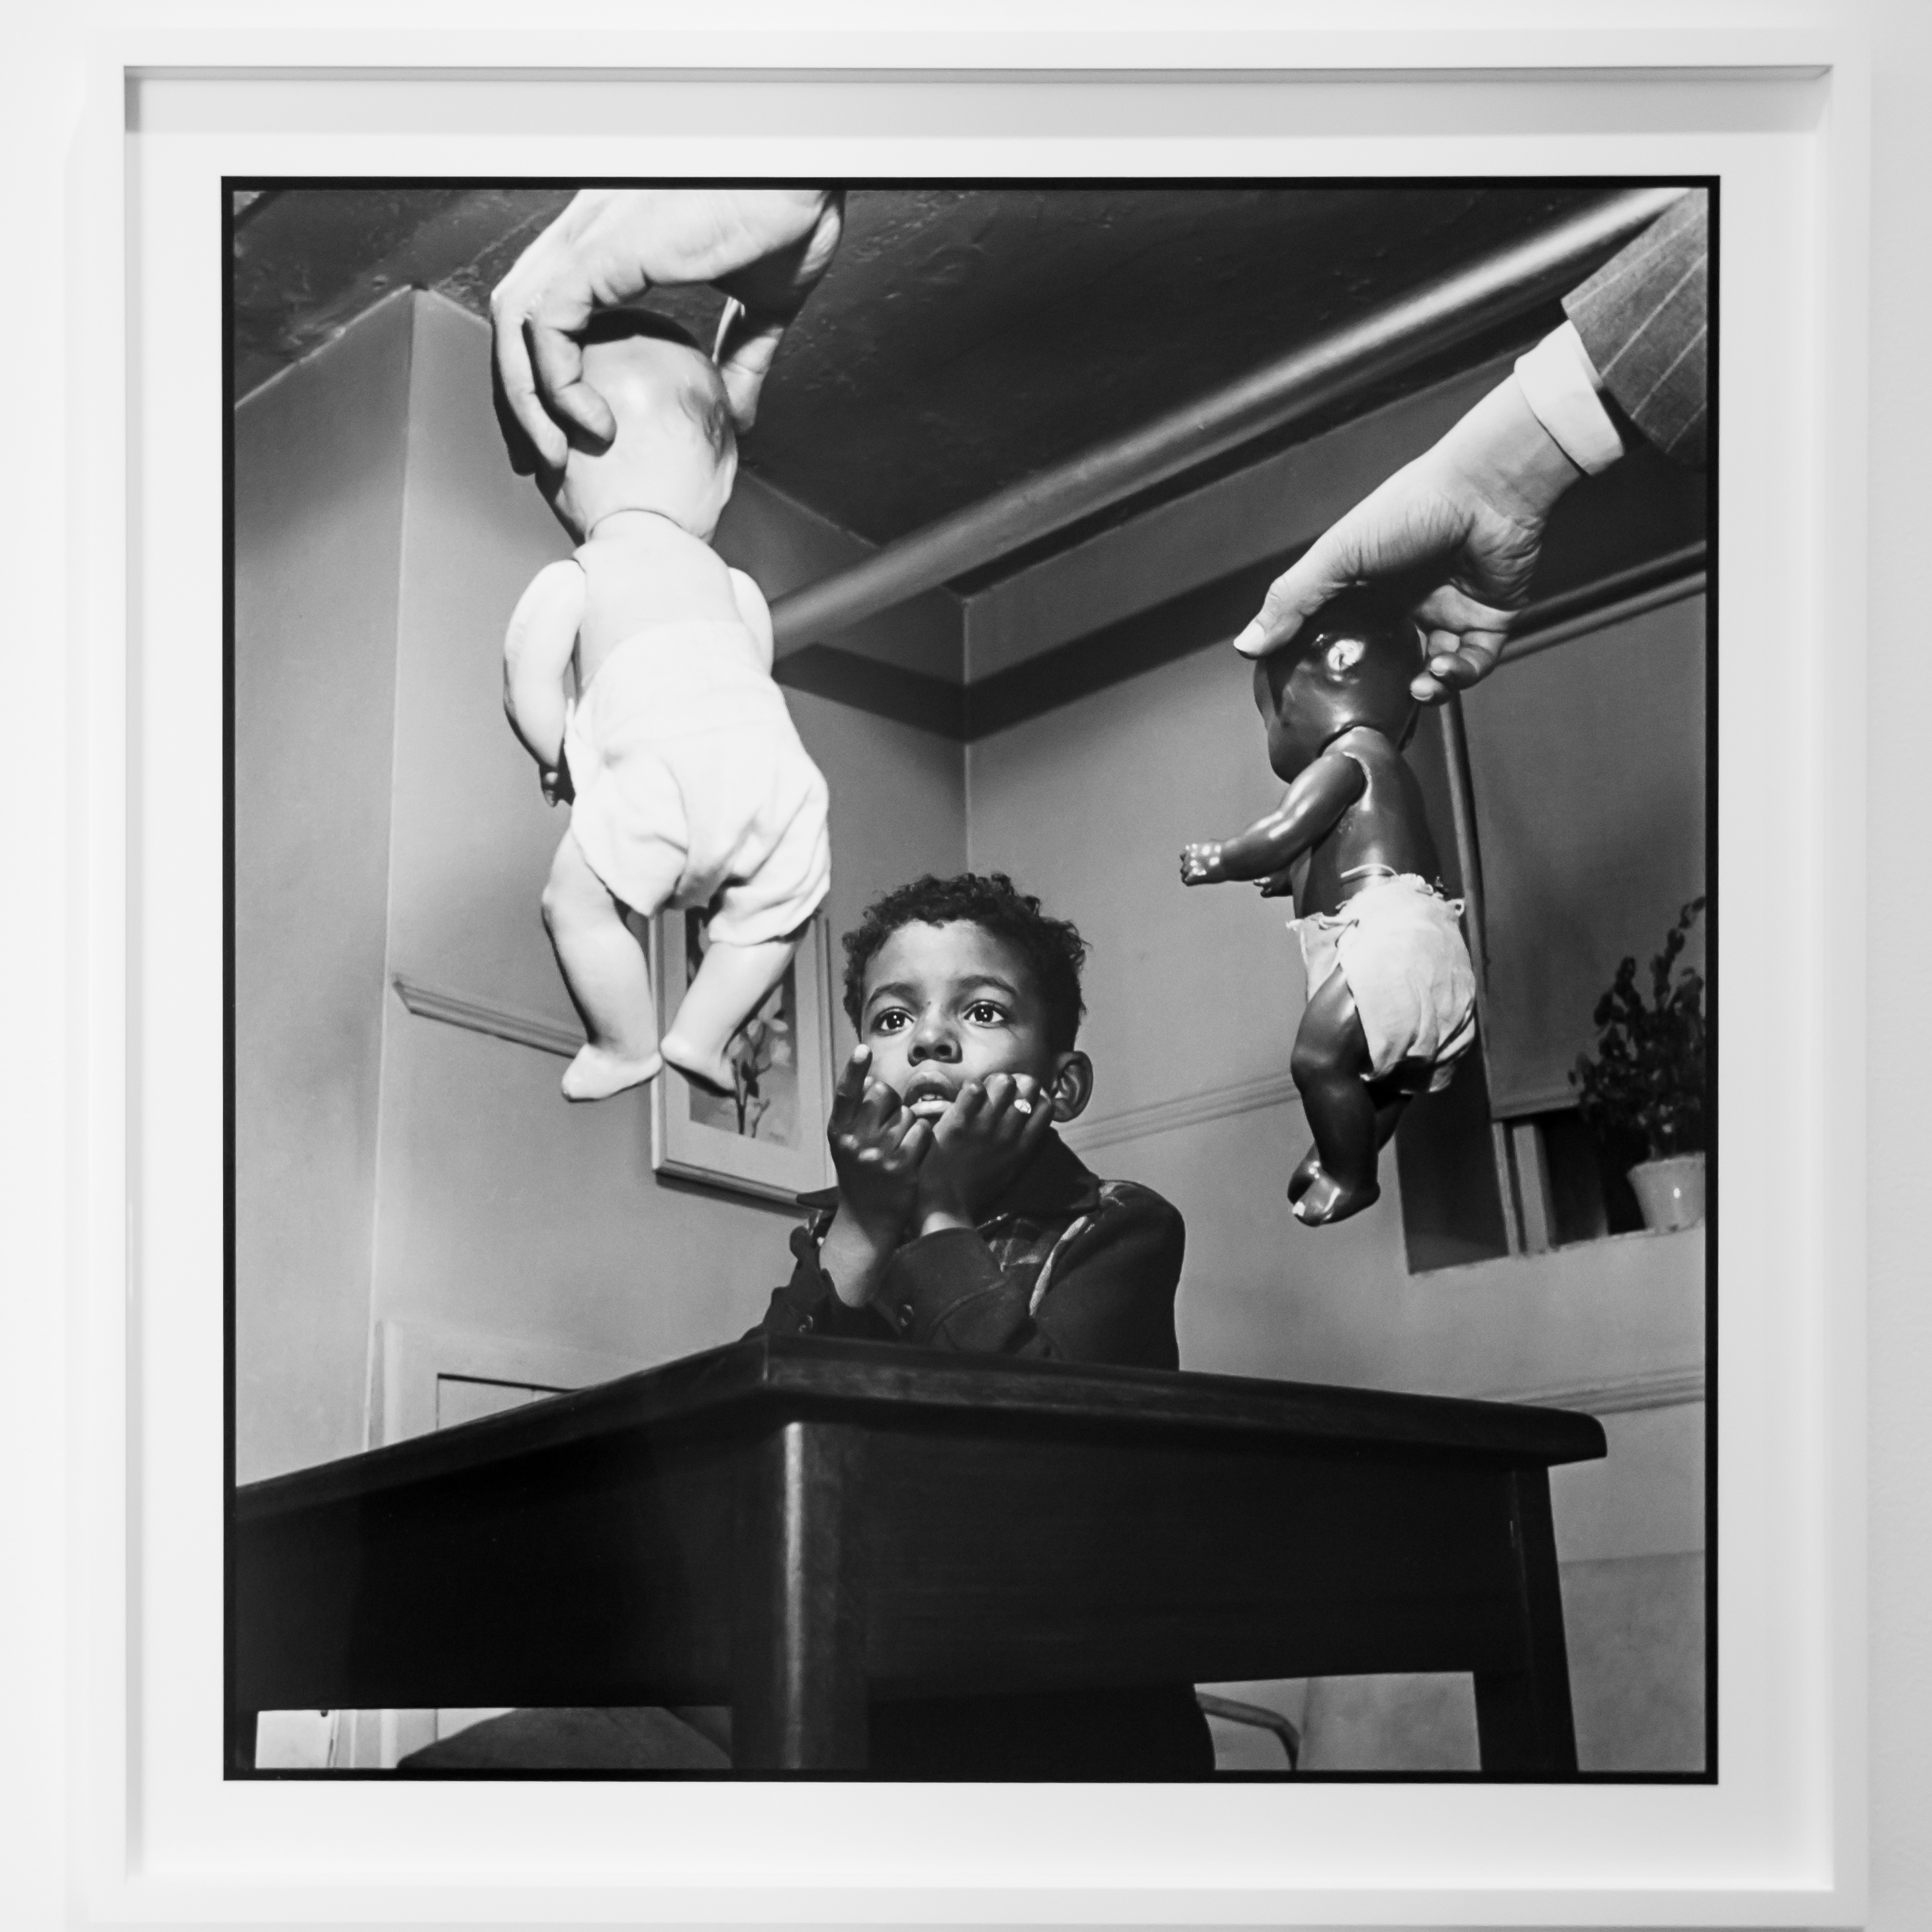 The uncommon power of Gordon Parks